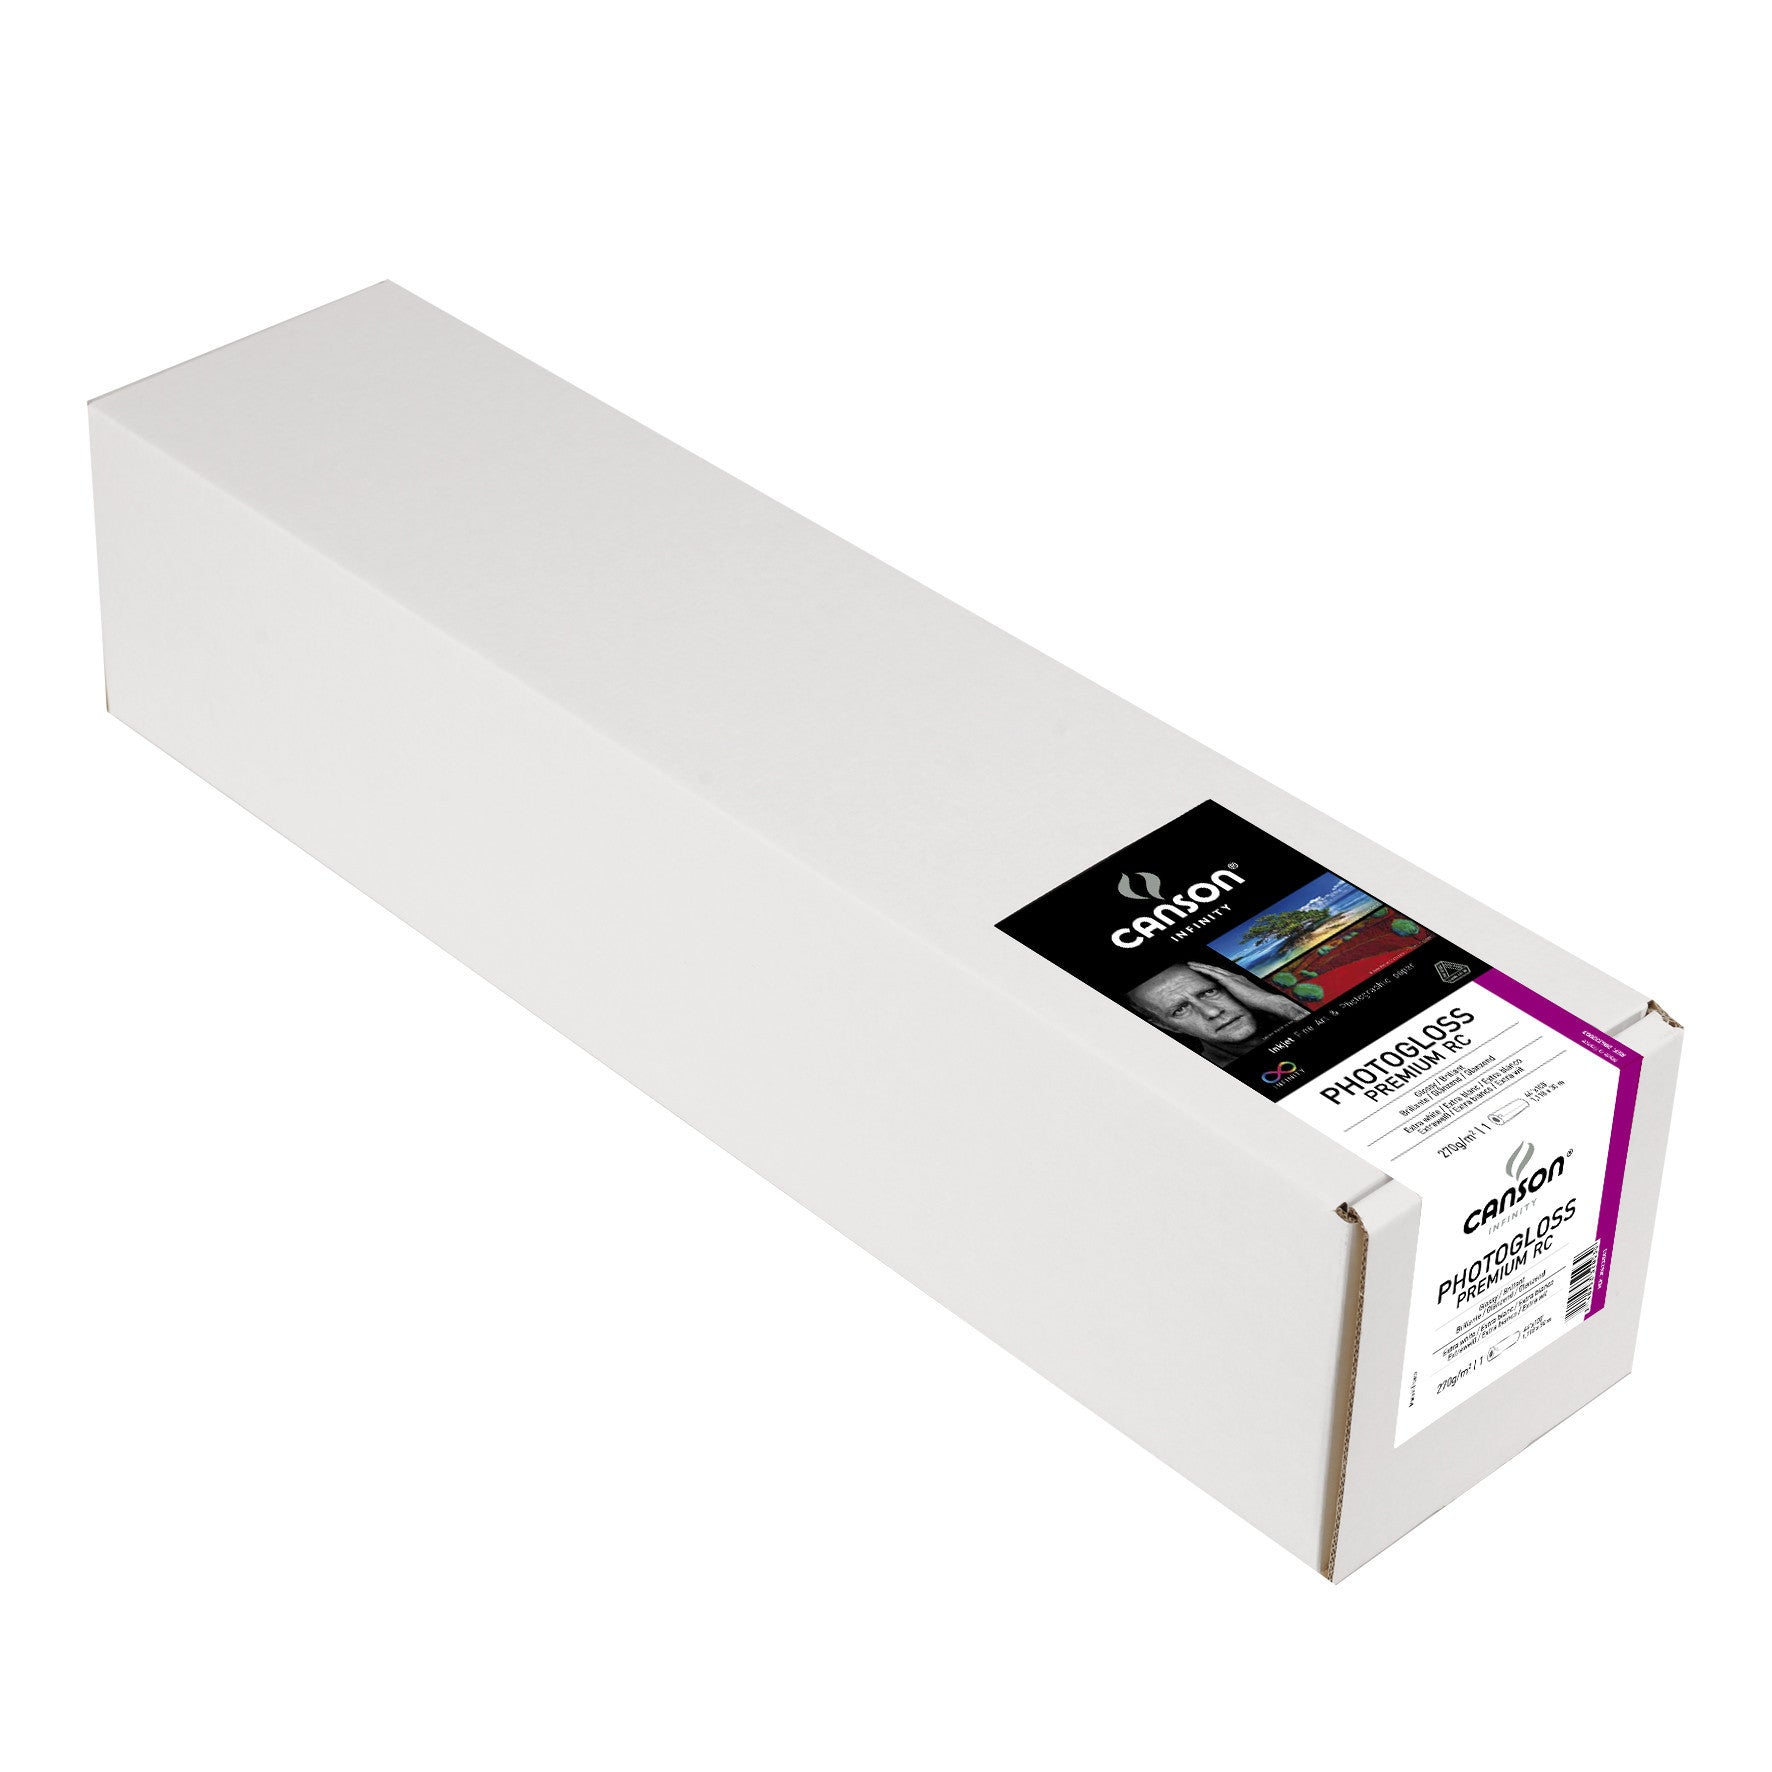 "Canson Infinity Photo Gloss Premium RC - 270gsm - 24""x100' roll"